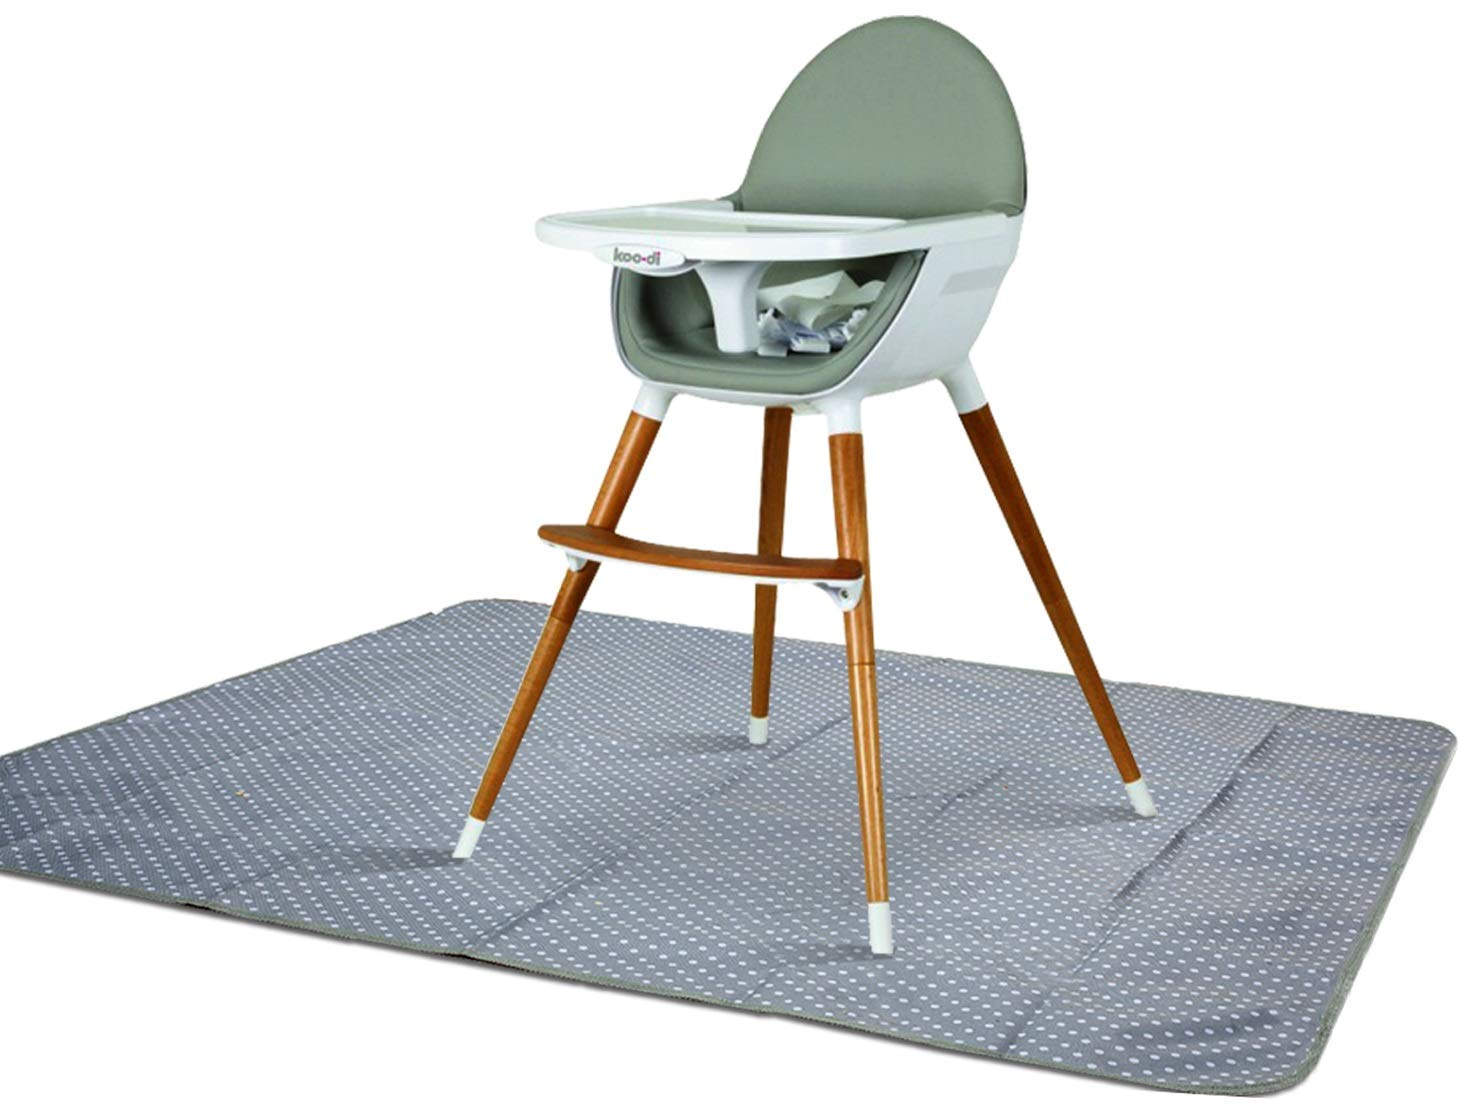 Splat Mat for Under High Chair - Splash Mat | Washable & Water Resistant | Non-Toxic | Multiple Uses | Easy to Wipe | Quick Drying | Large 42 inch Size | Comes w/Carrying case for Floor or Table by Alnoor USA